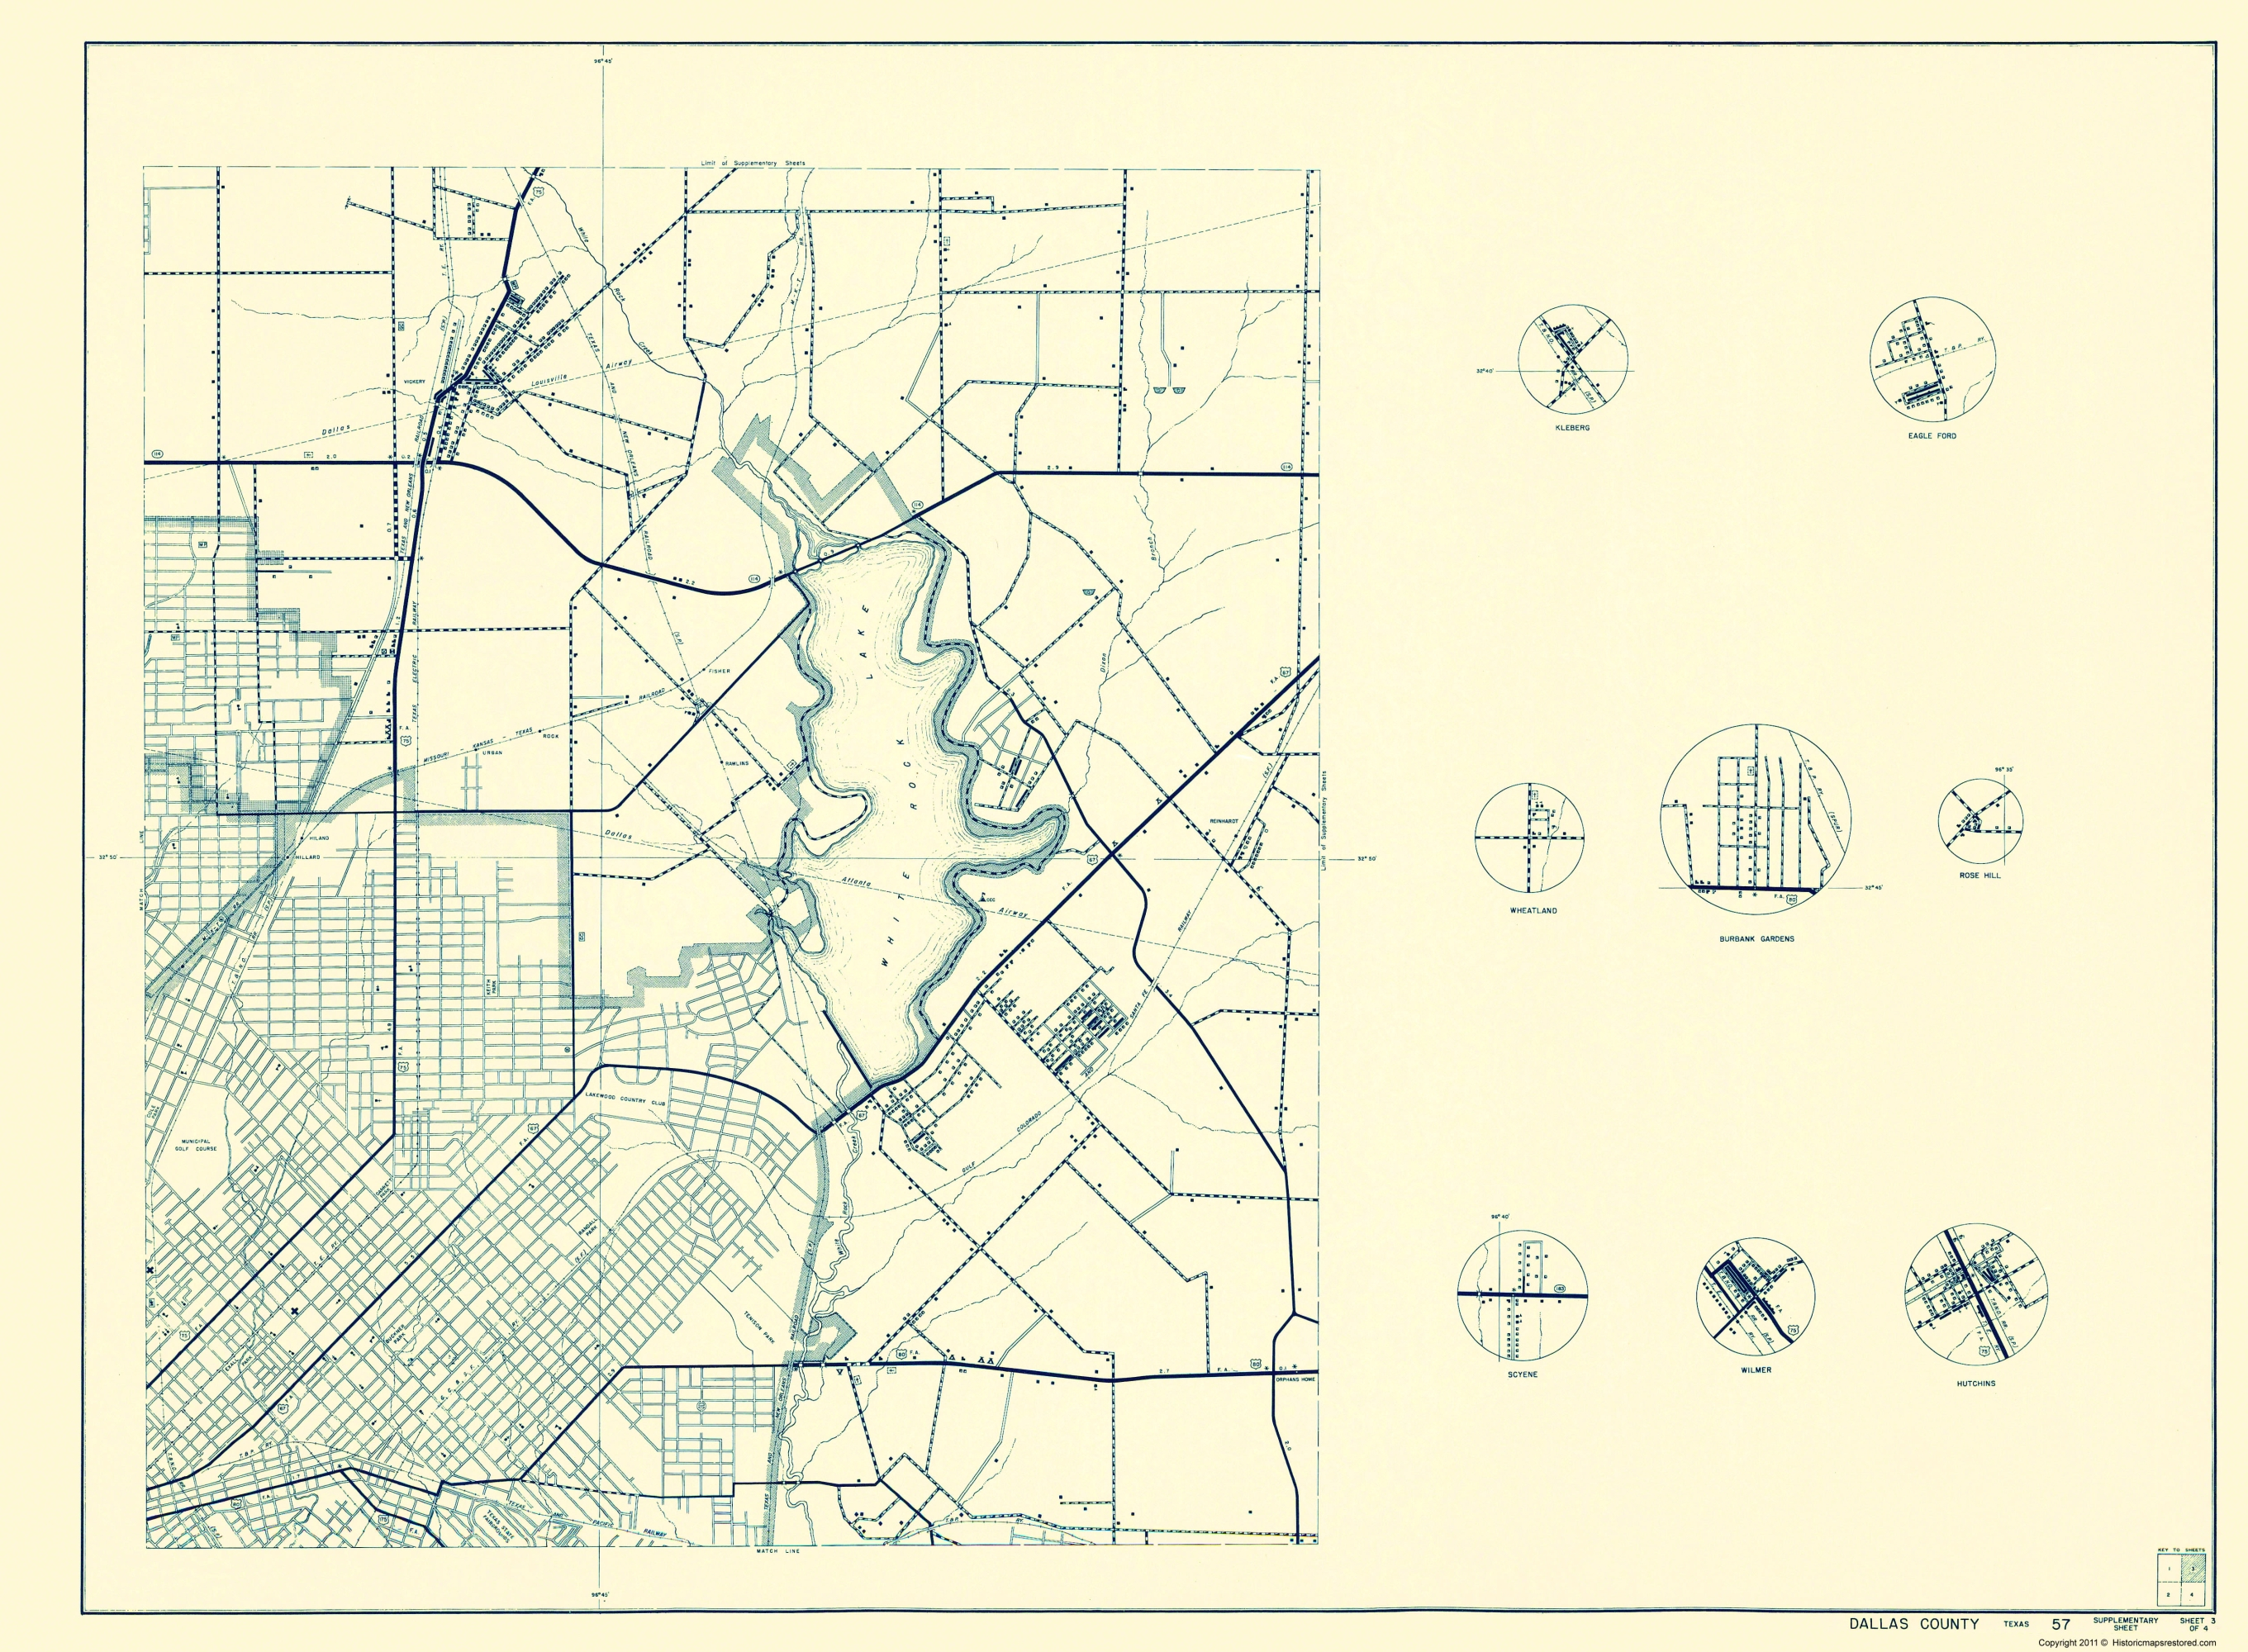 Old County Map - Dallas Texas Cities 3 of 4 1936